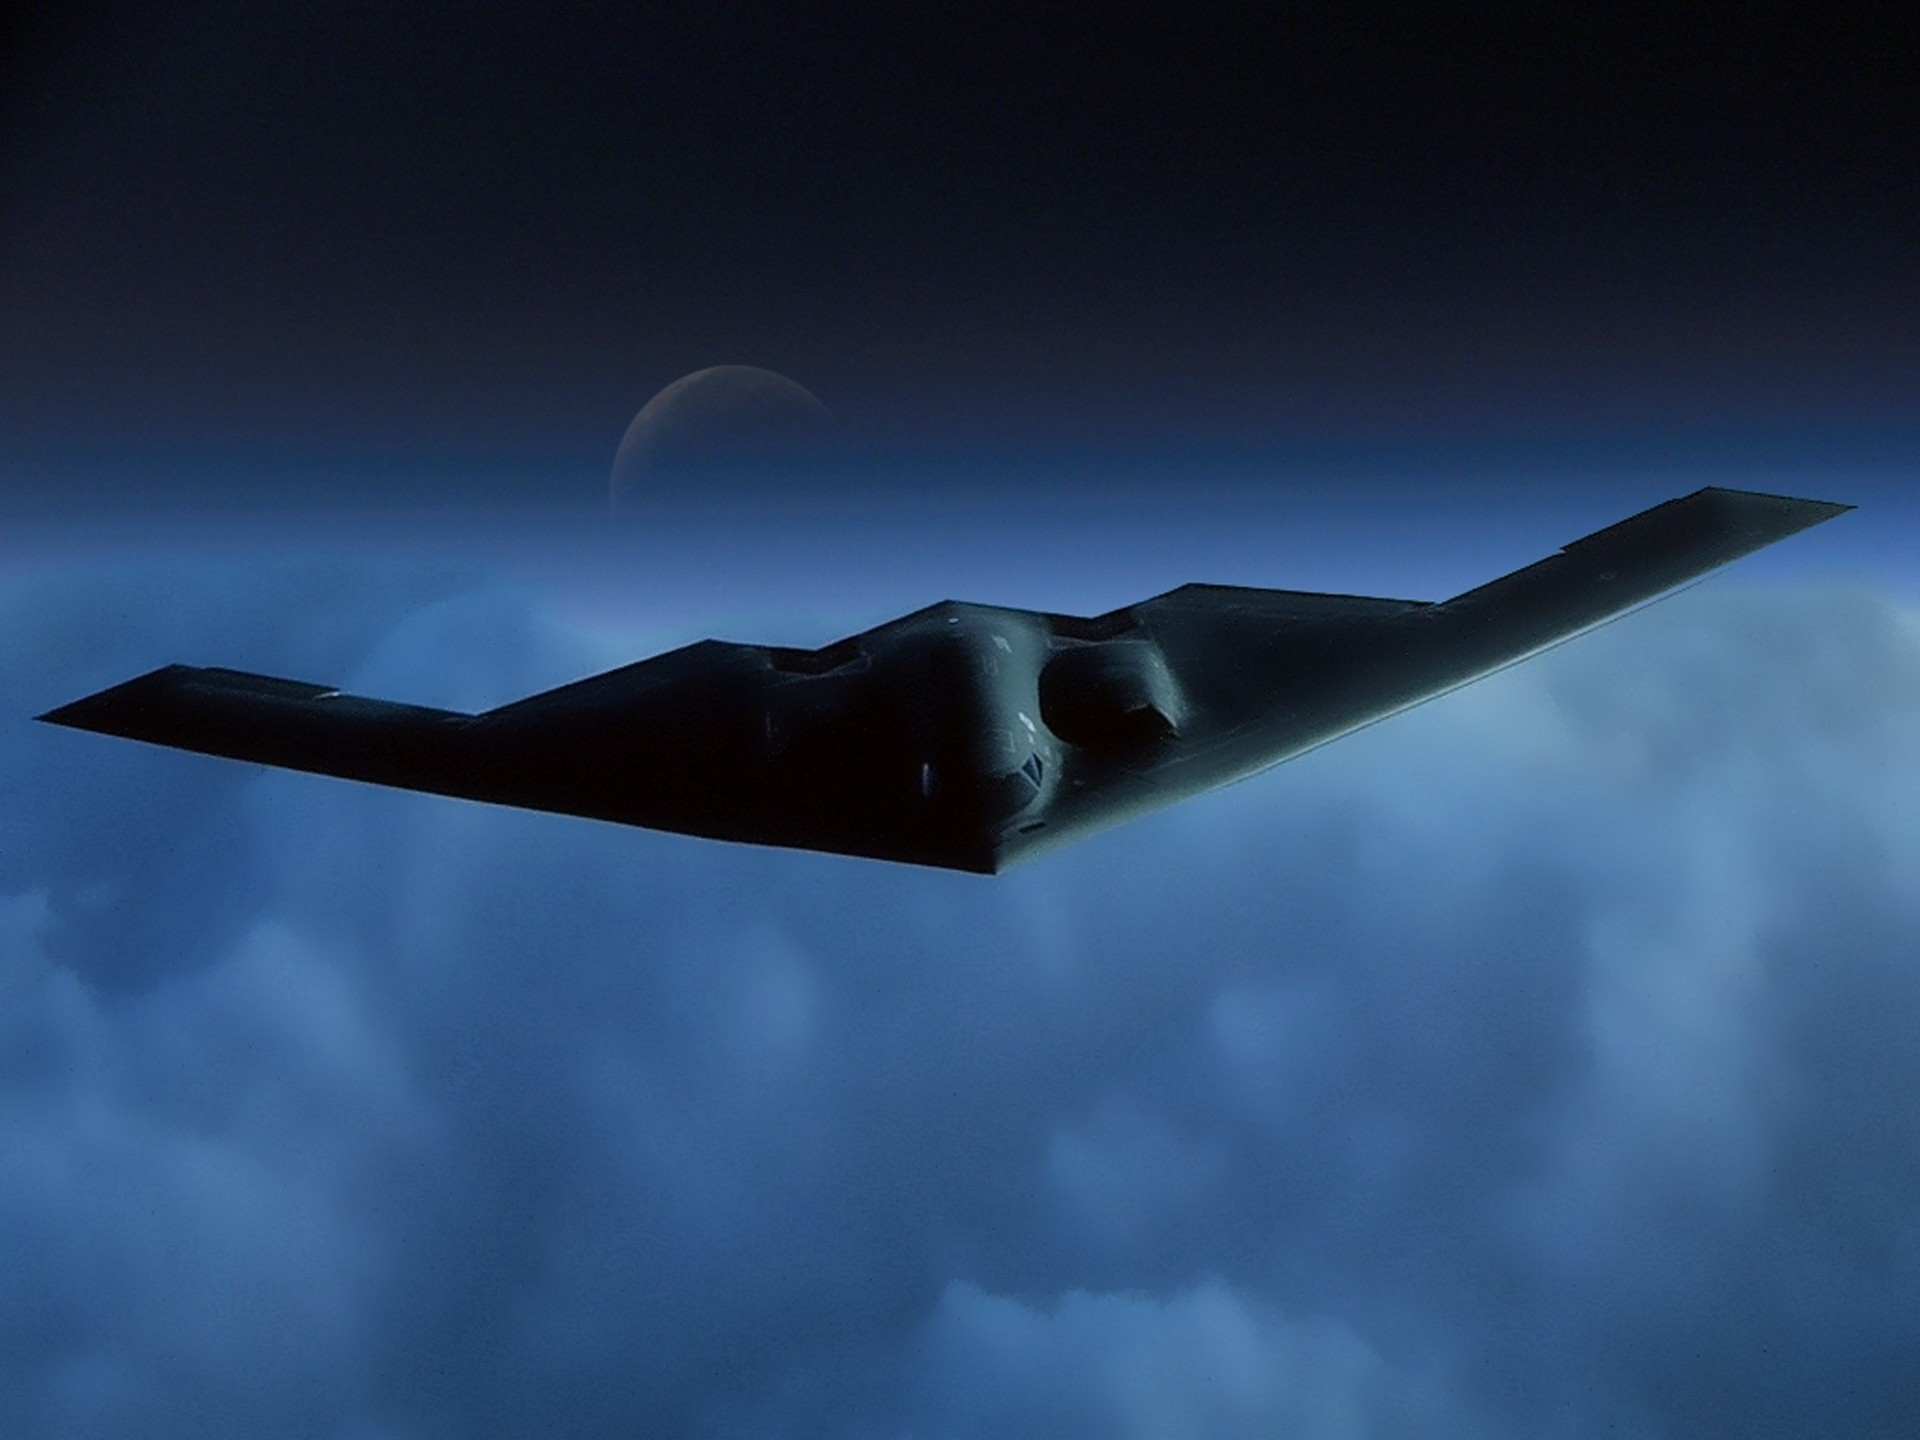 Stealth Bomber Wallpaper 30 Background Pictures 1920x1440